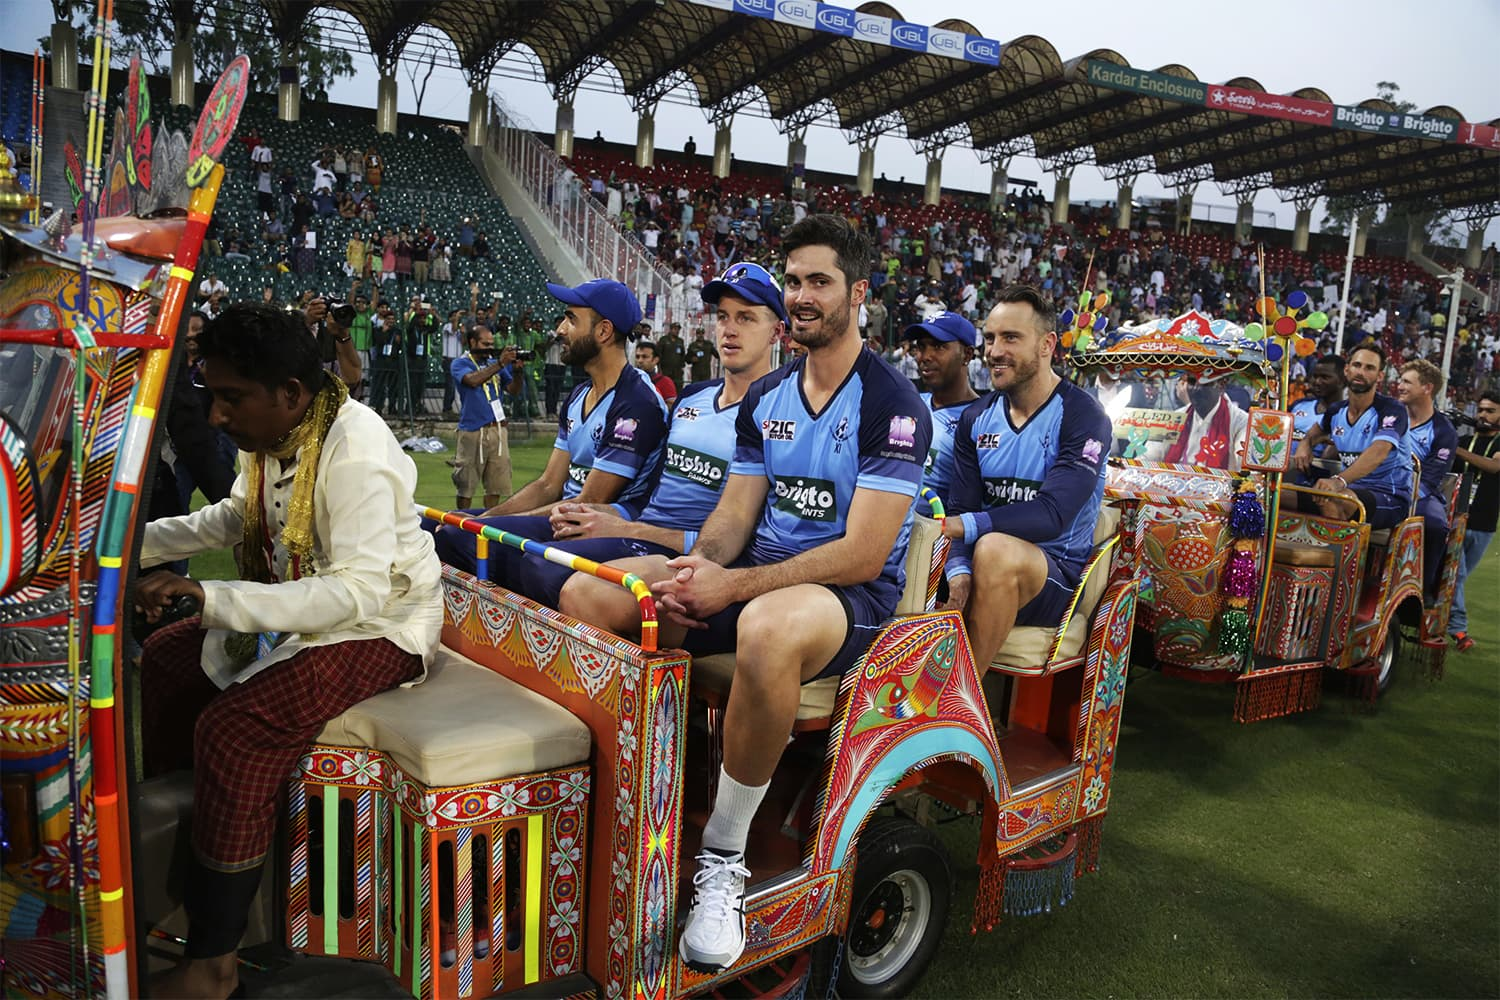 Members of the World XI team ride in traditional rickshaws before the start of the first match of the Independence Cup series between the World XI team and Pakistan in Lahore. ─ AP